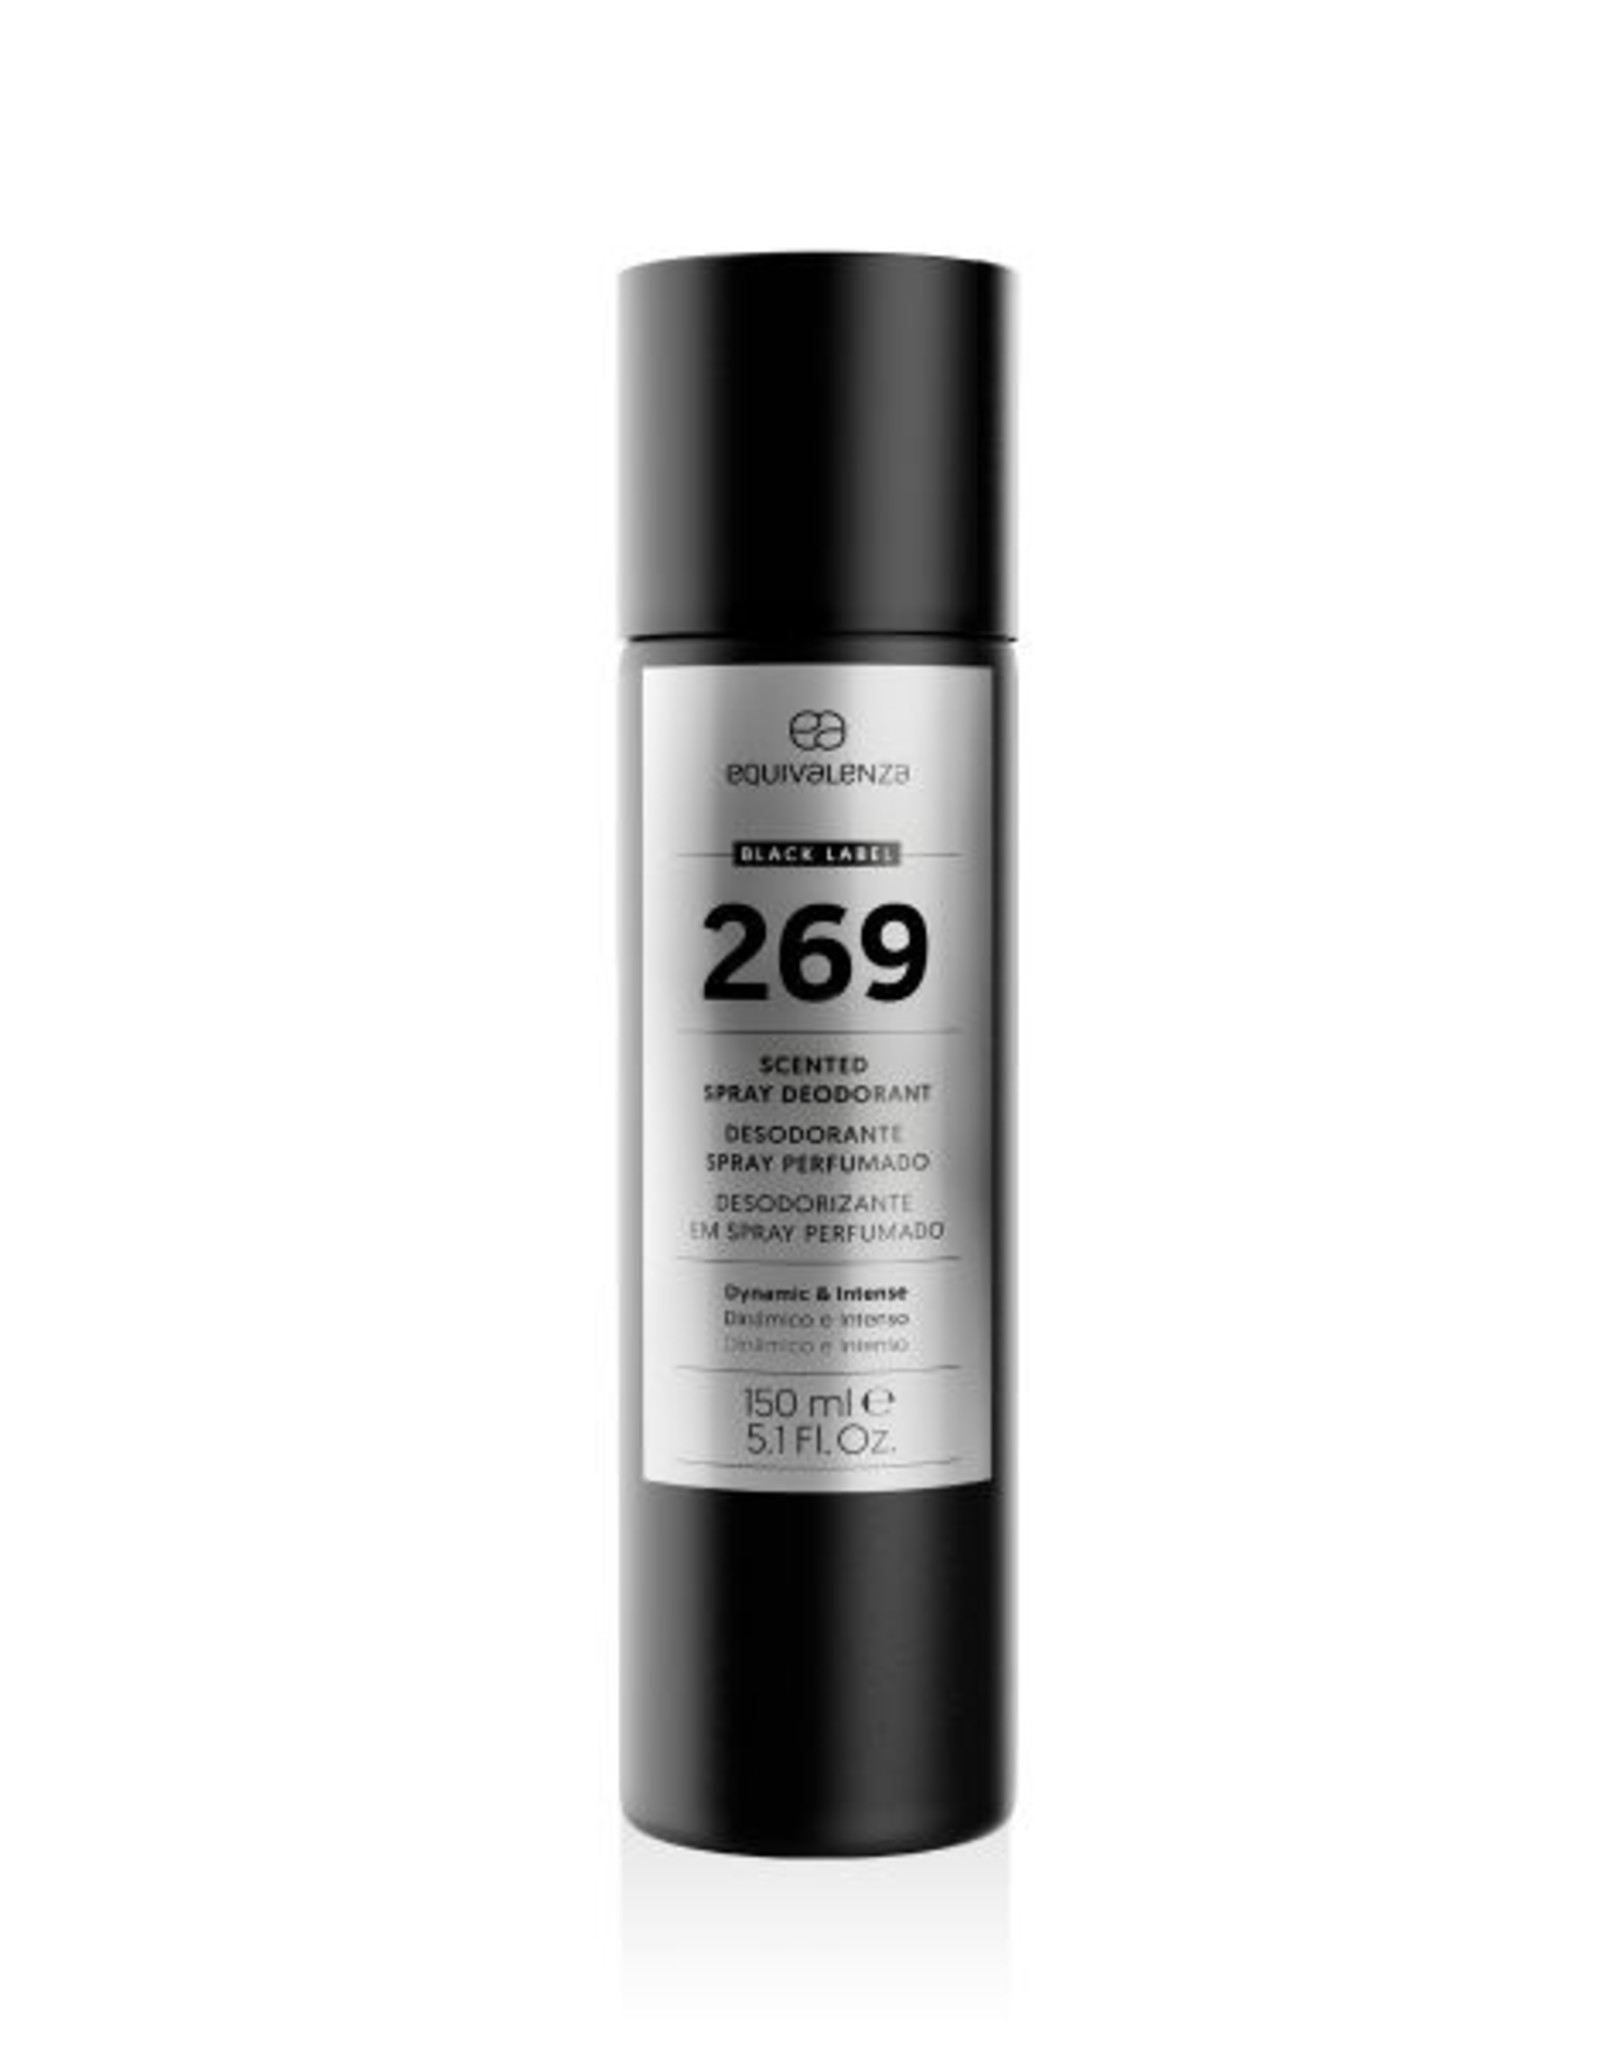 Equivalenza Déodorant Black Label 269